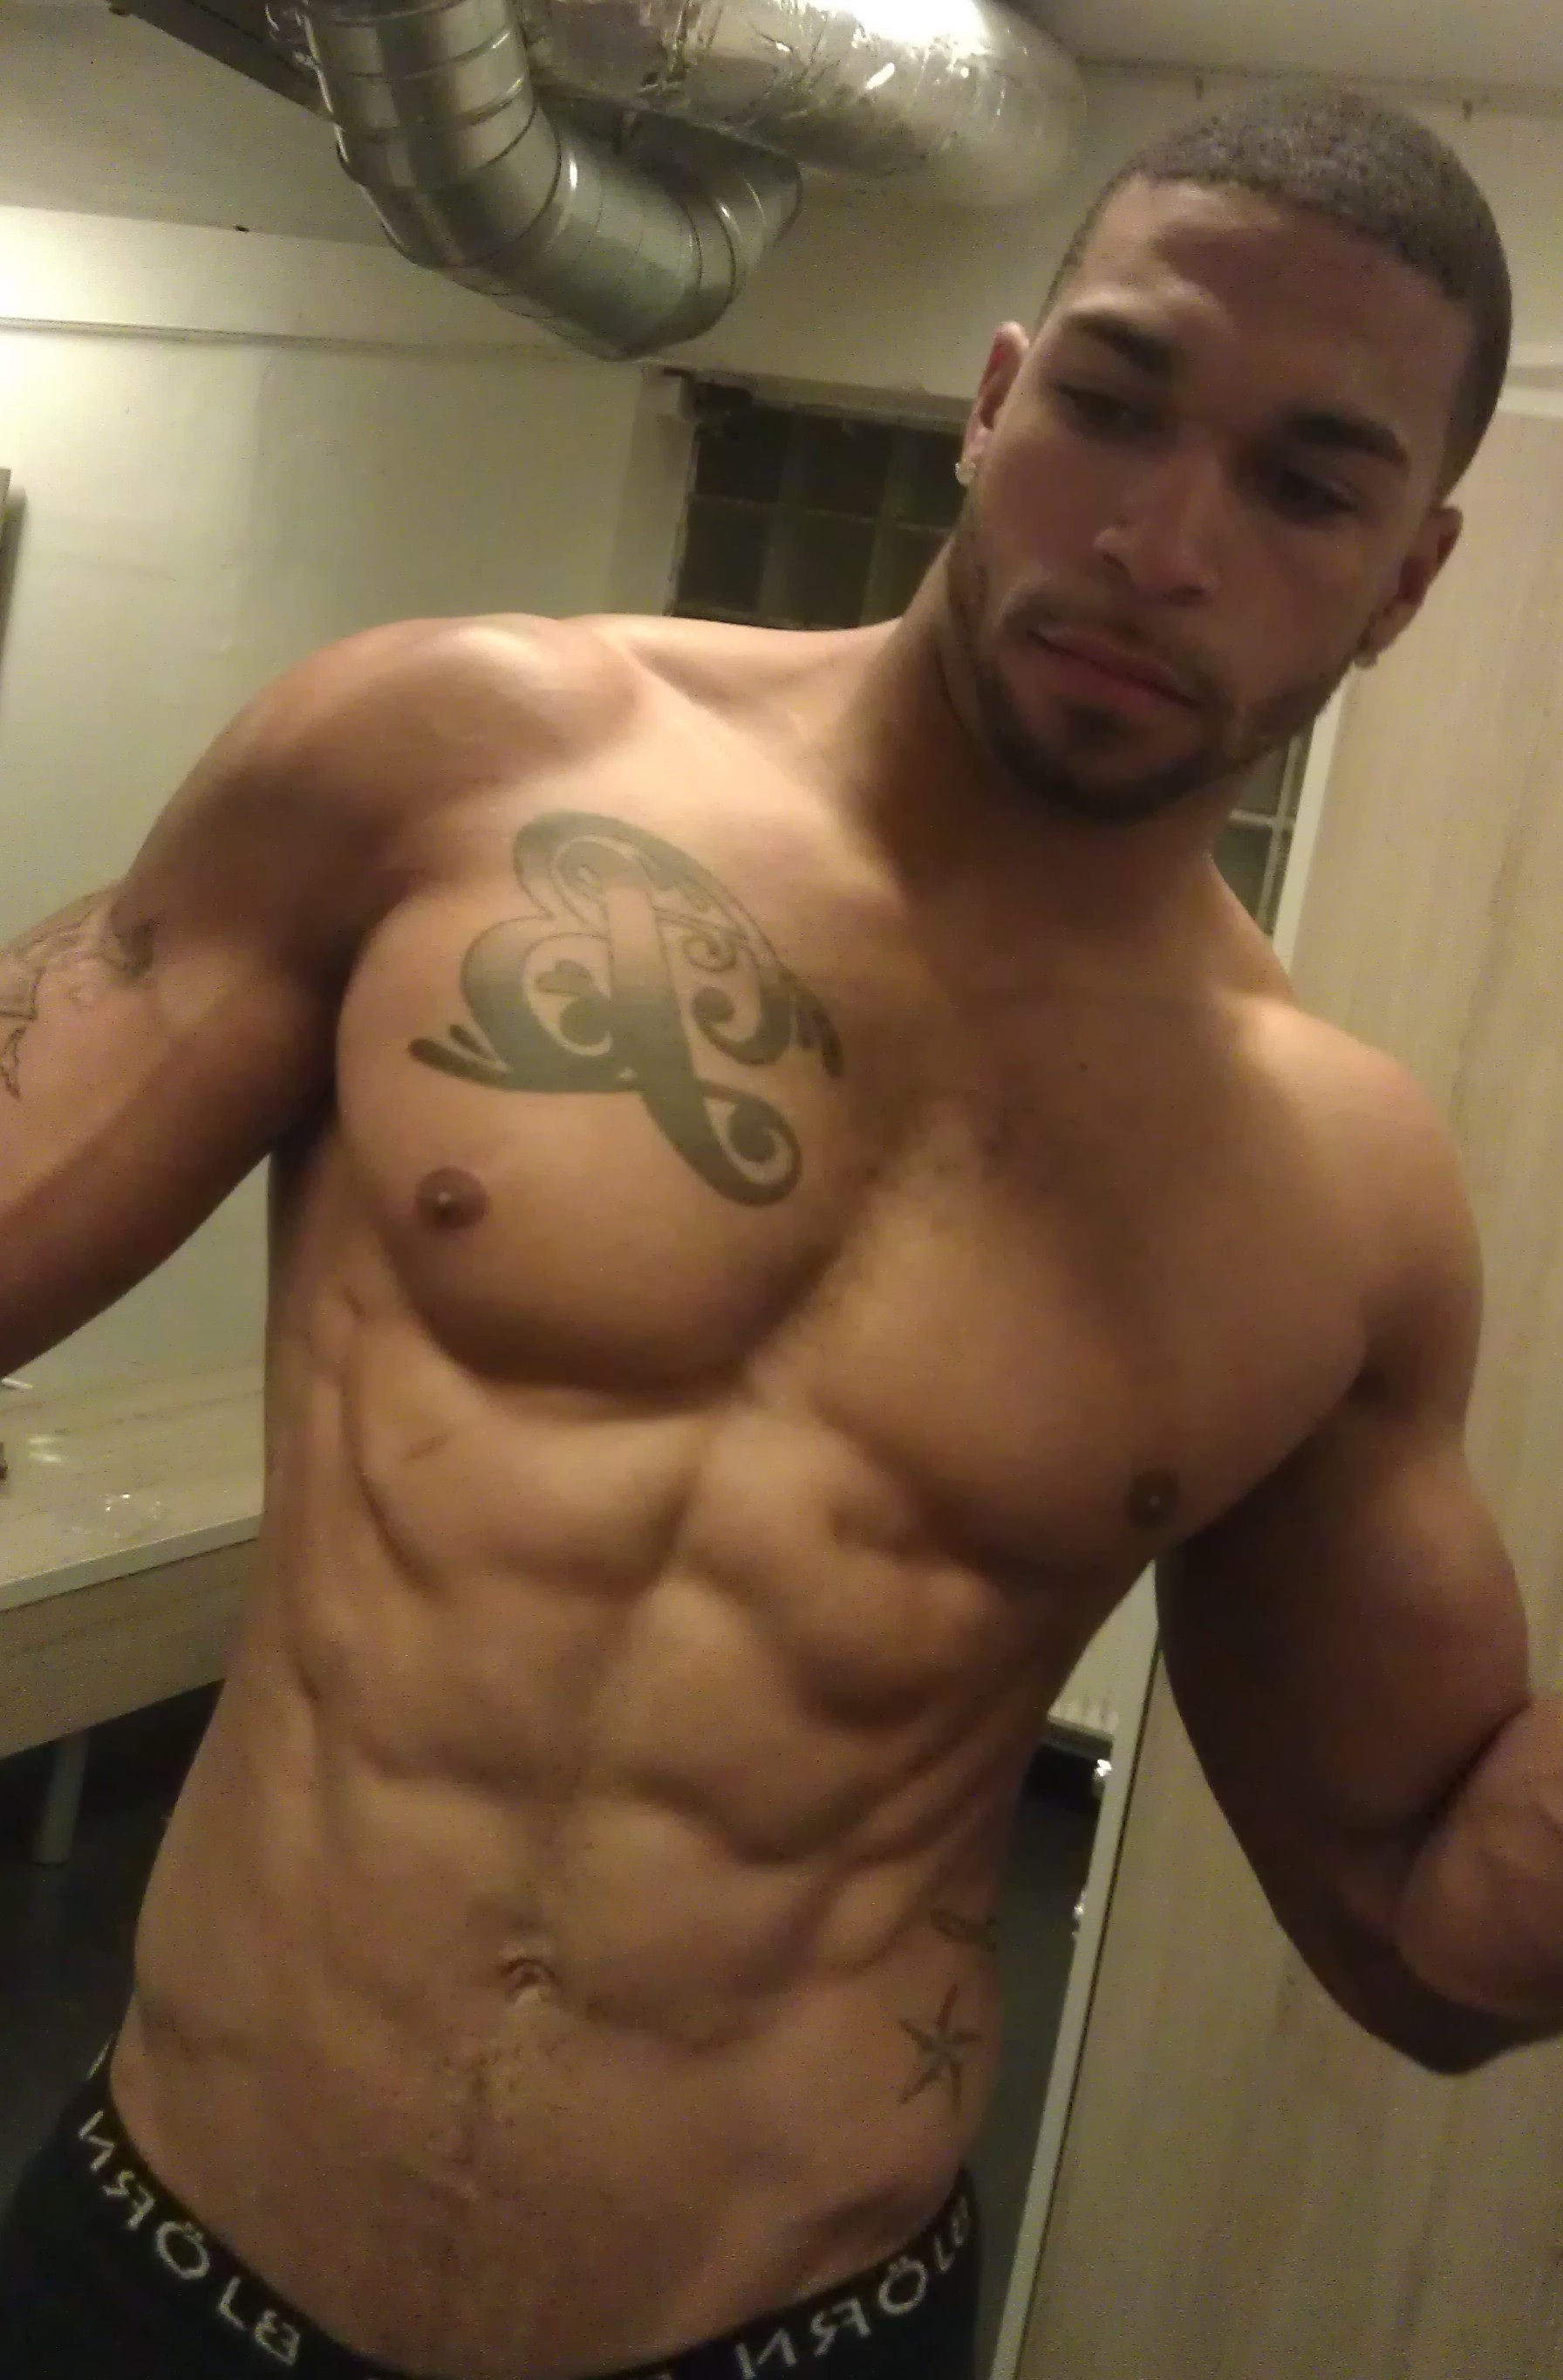 from Justus black men naked self shots